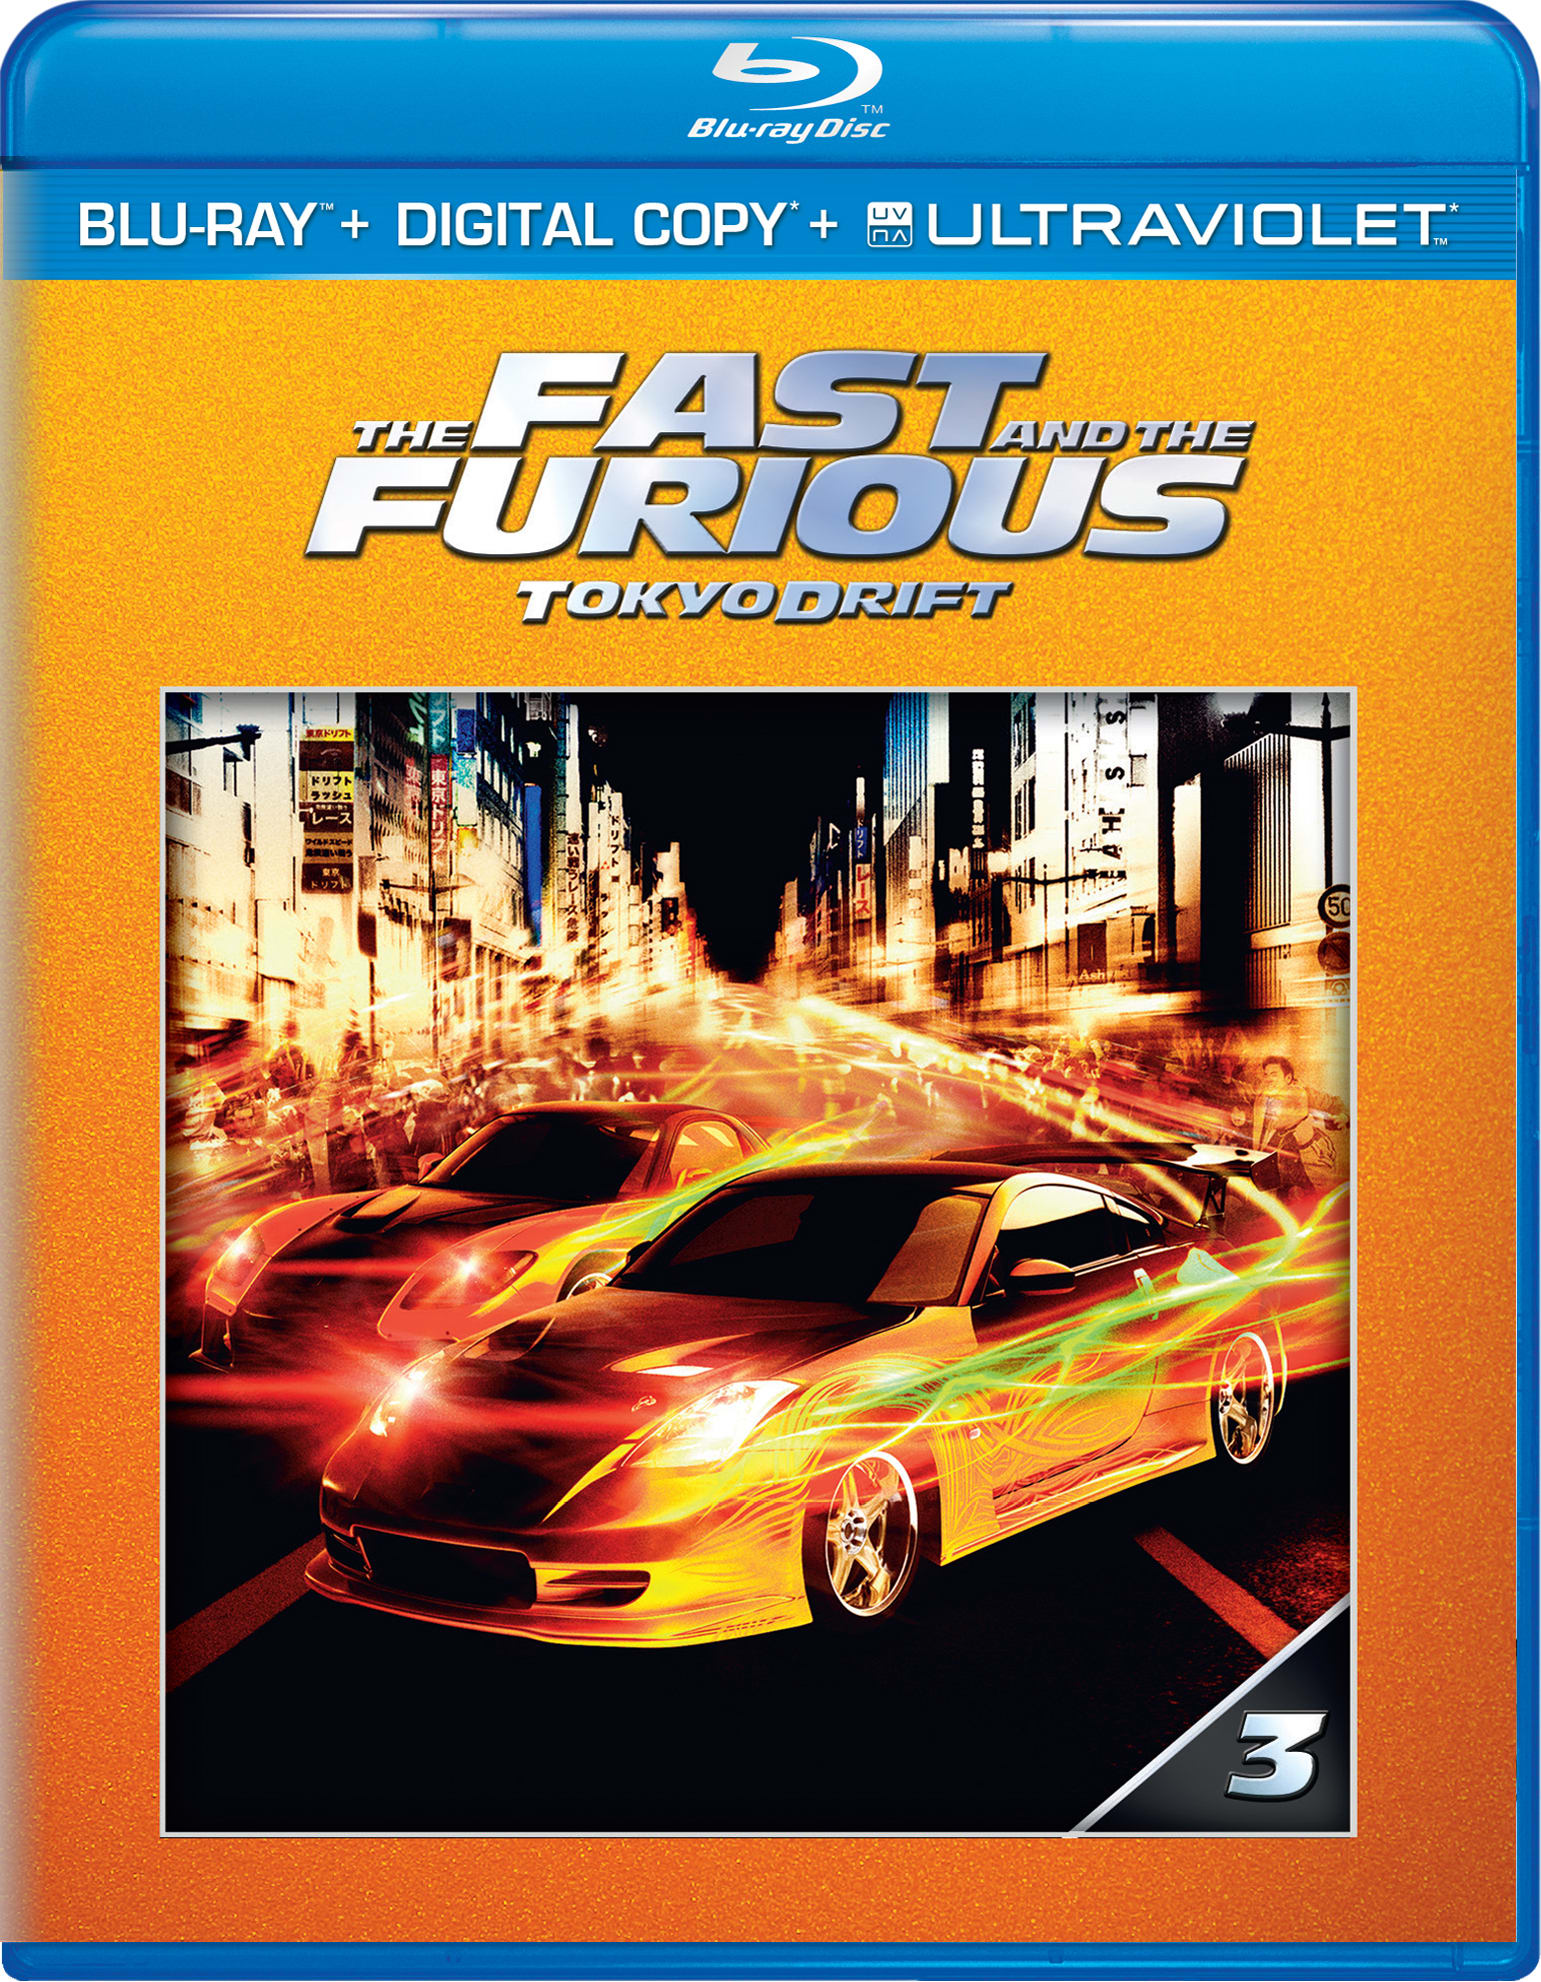 The Fast and the Furious: Tokyo Drift (Digital + Ultraviolet) [Blu-ray]